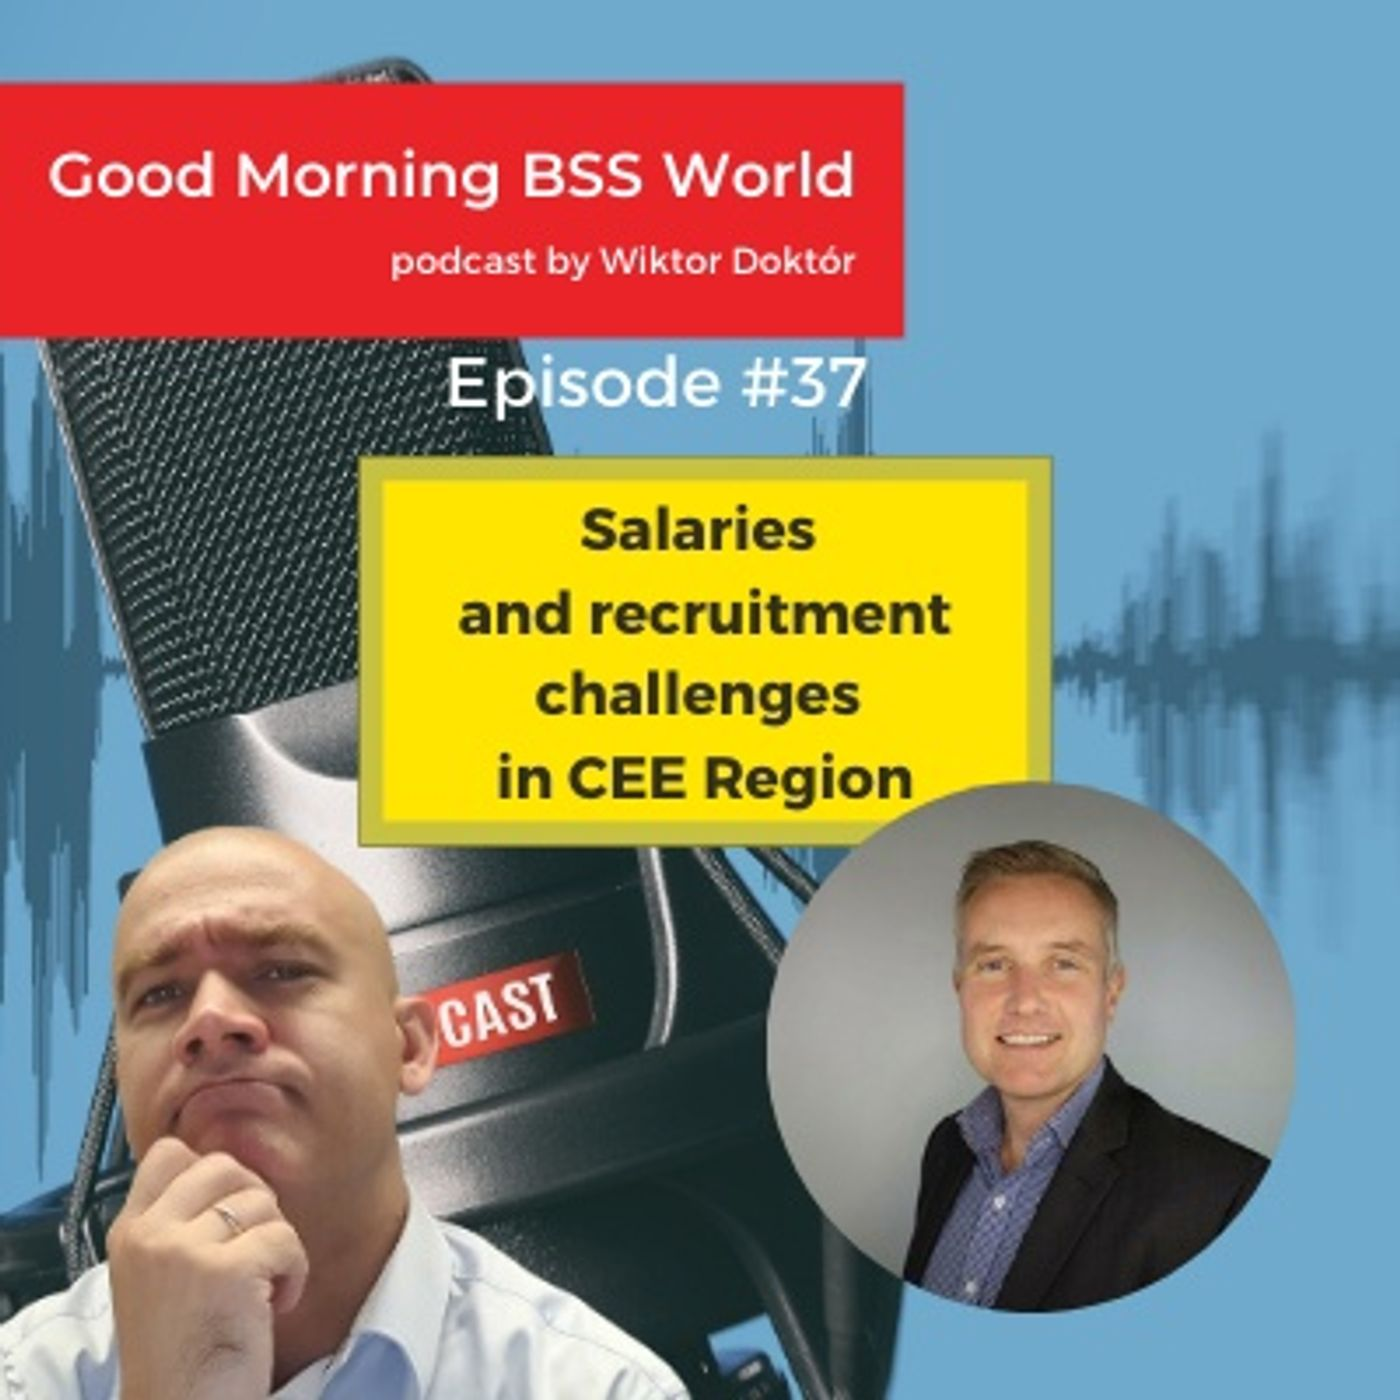 #37 With Shane Hanrahan about salaries and recruitment challenges in CEE Region